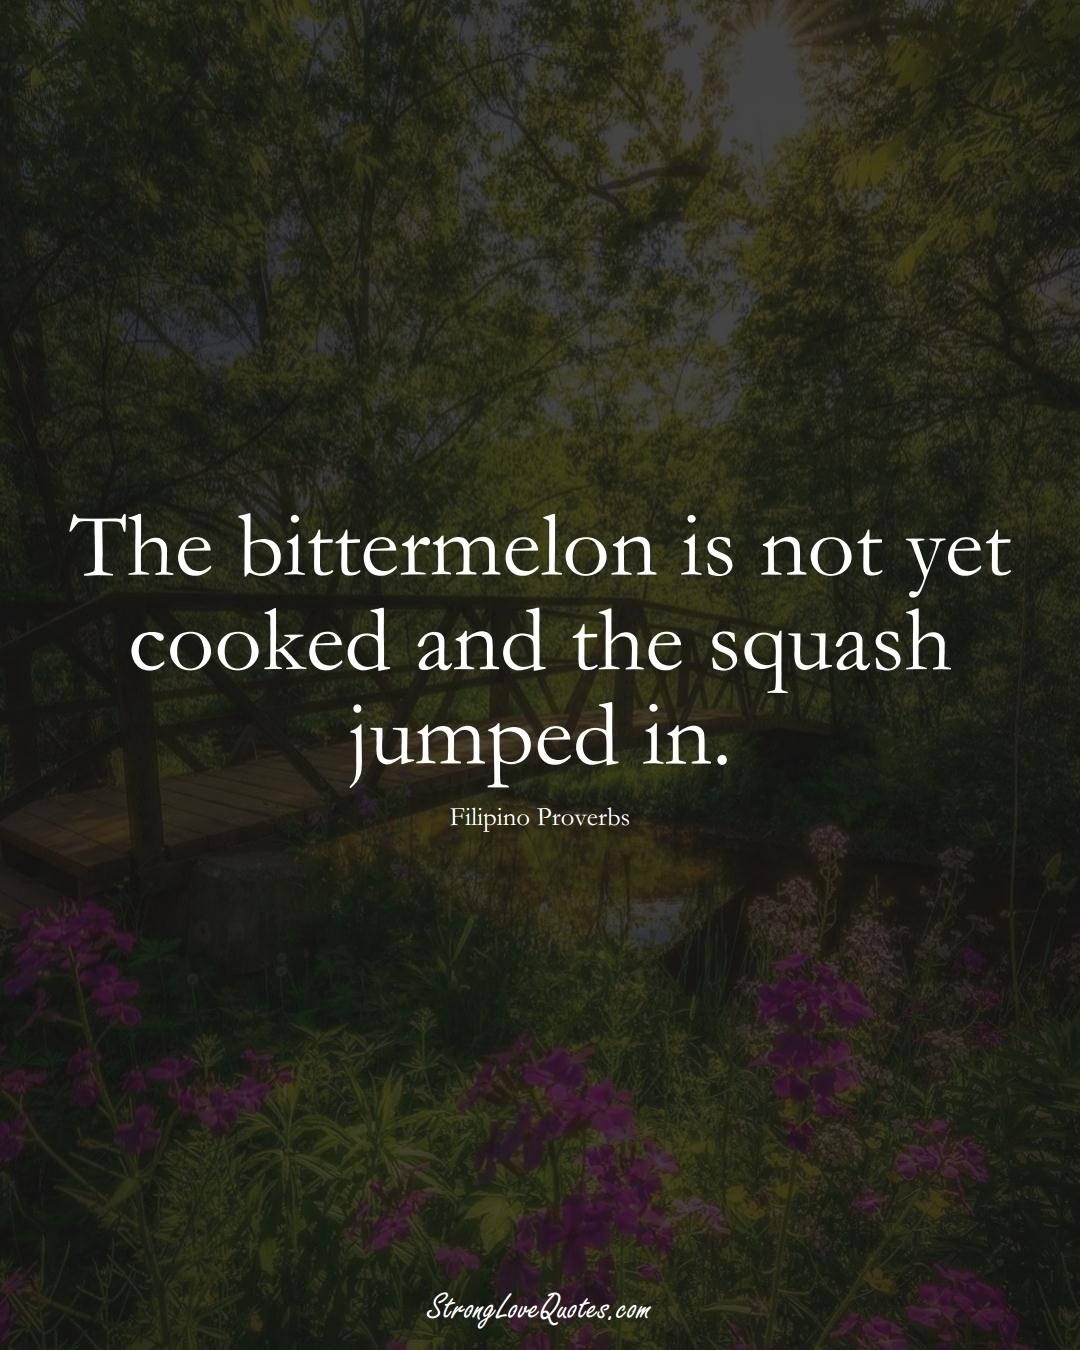 The bittermelon is not yet cooked and the squash jumped in. (Filipino Sayings);  #AsianSayings